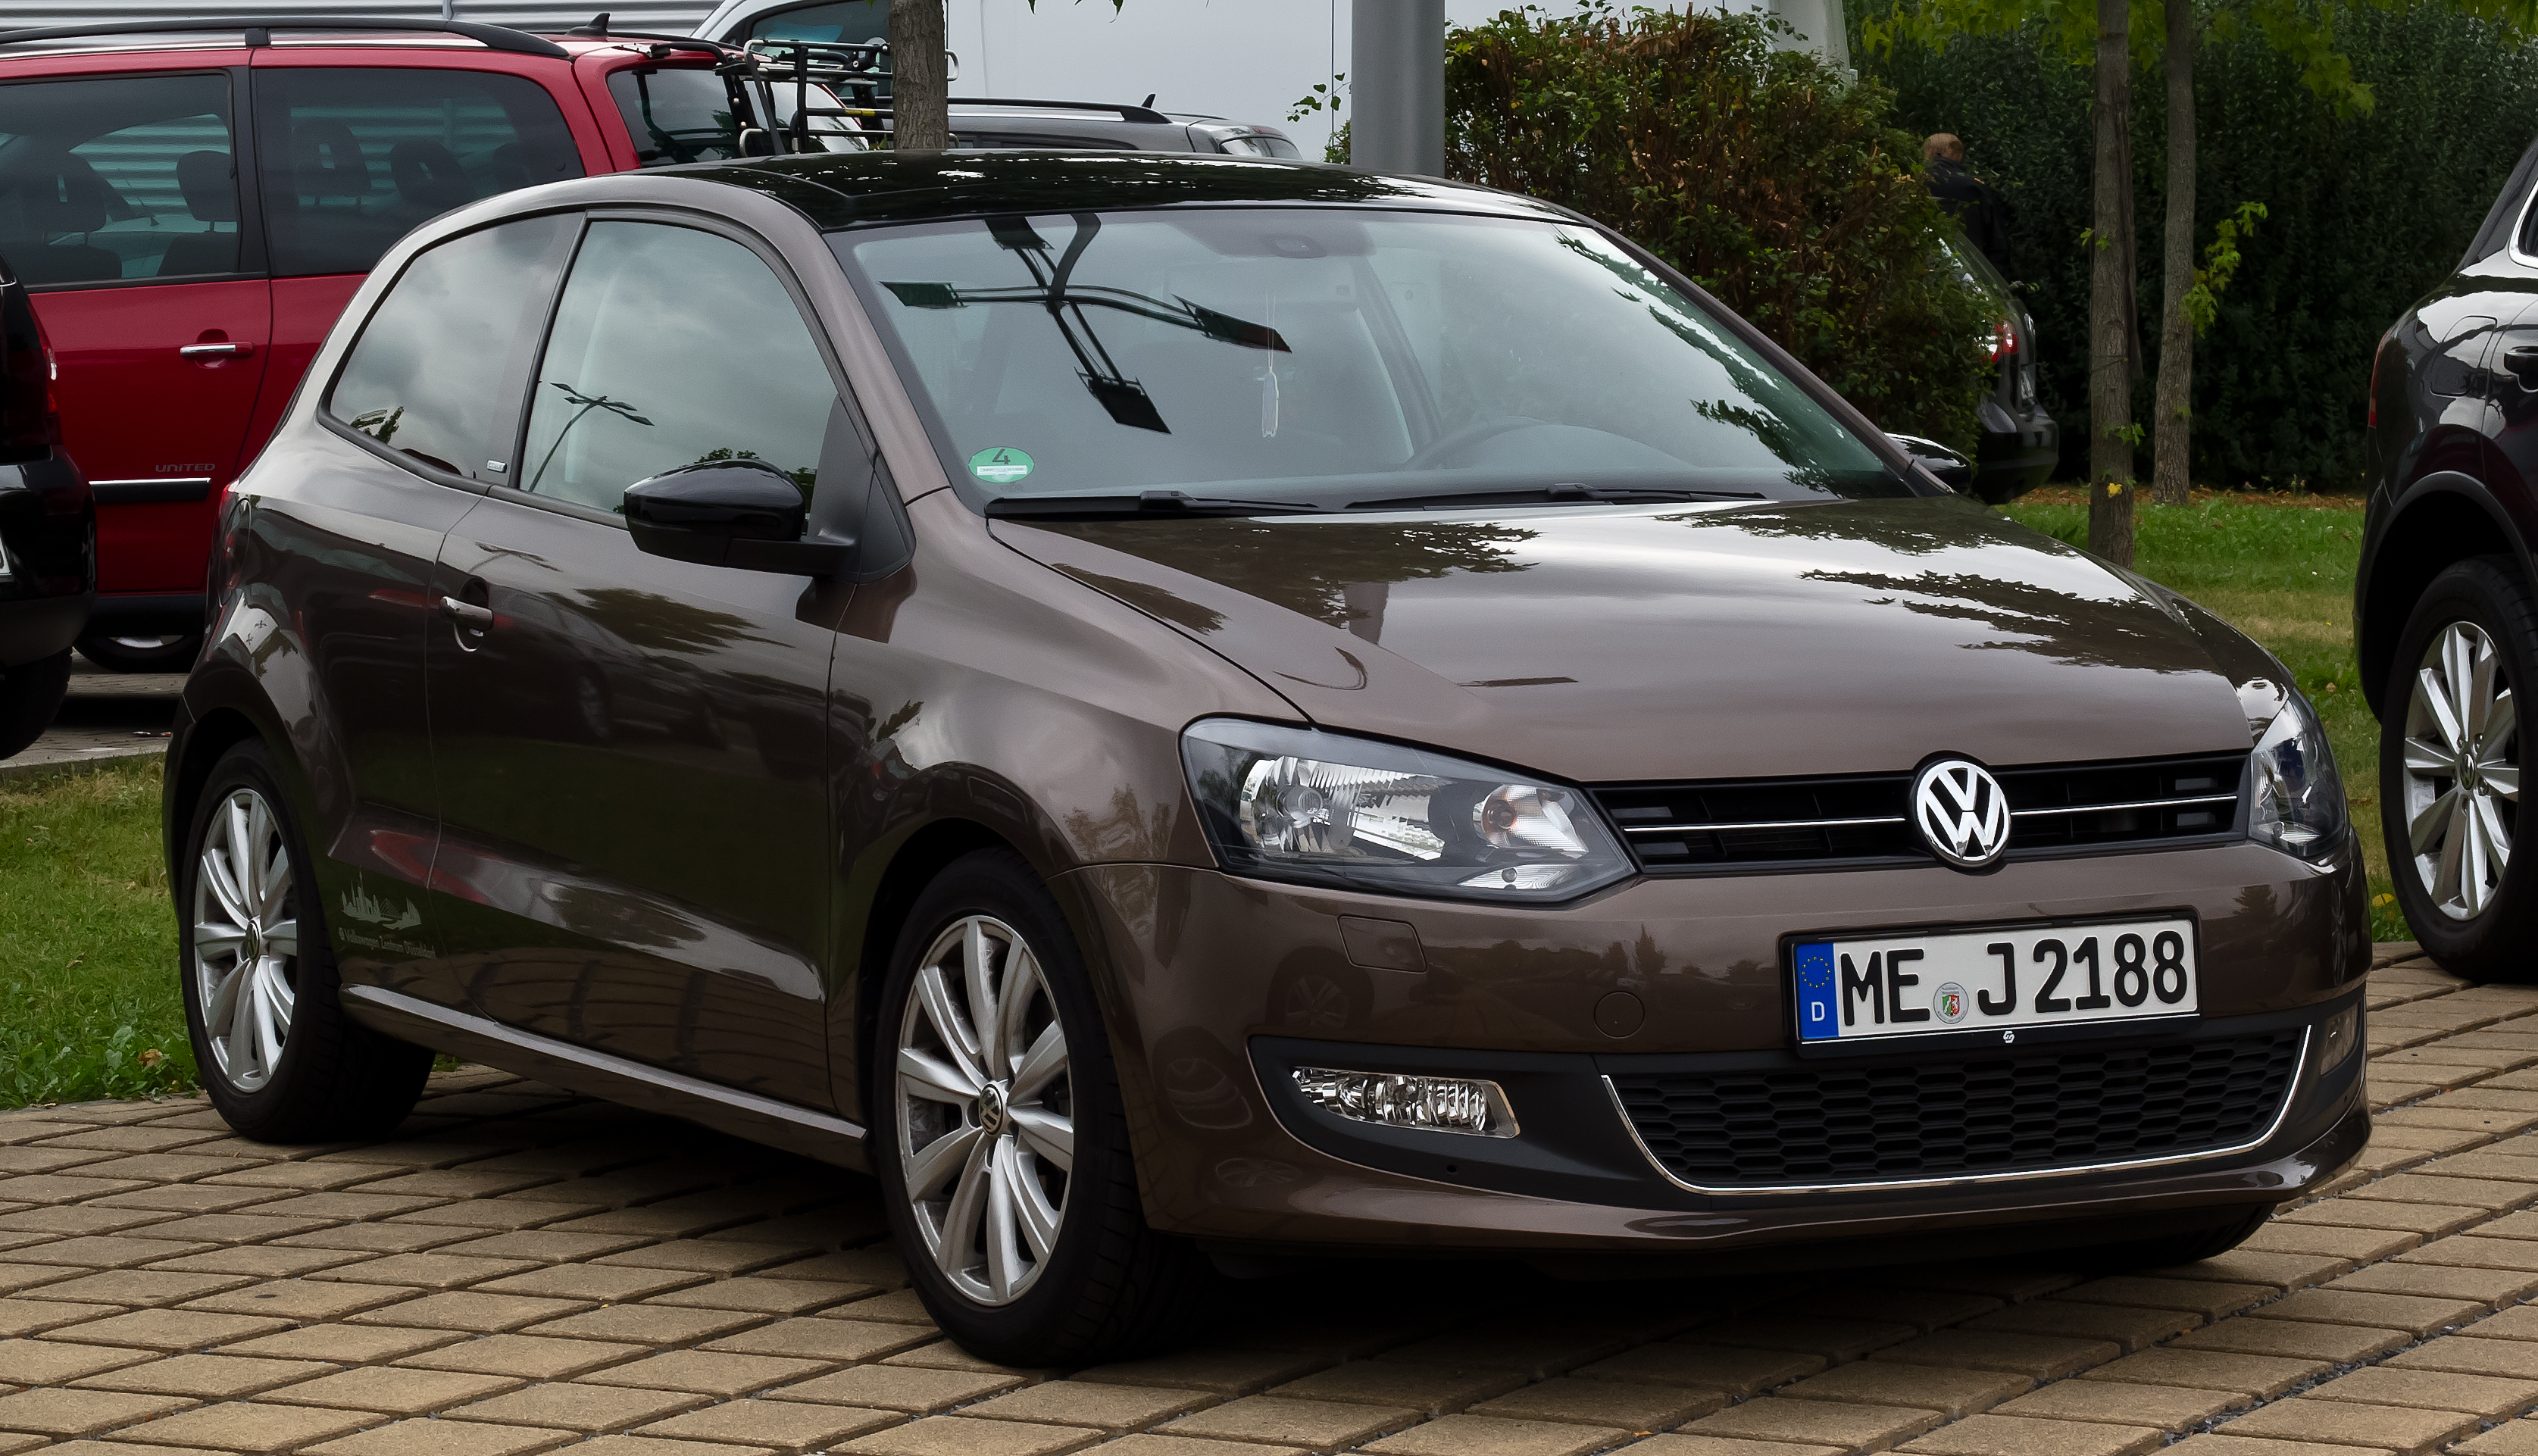 file vw polo style v frontansicht 30 august 2012 d wikipedia. Black Bedroom Furniture Sets. Home Design Ideas